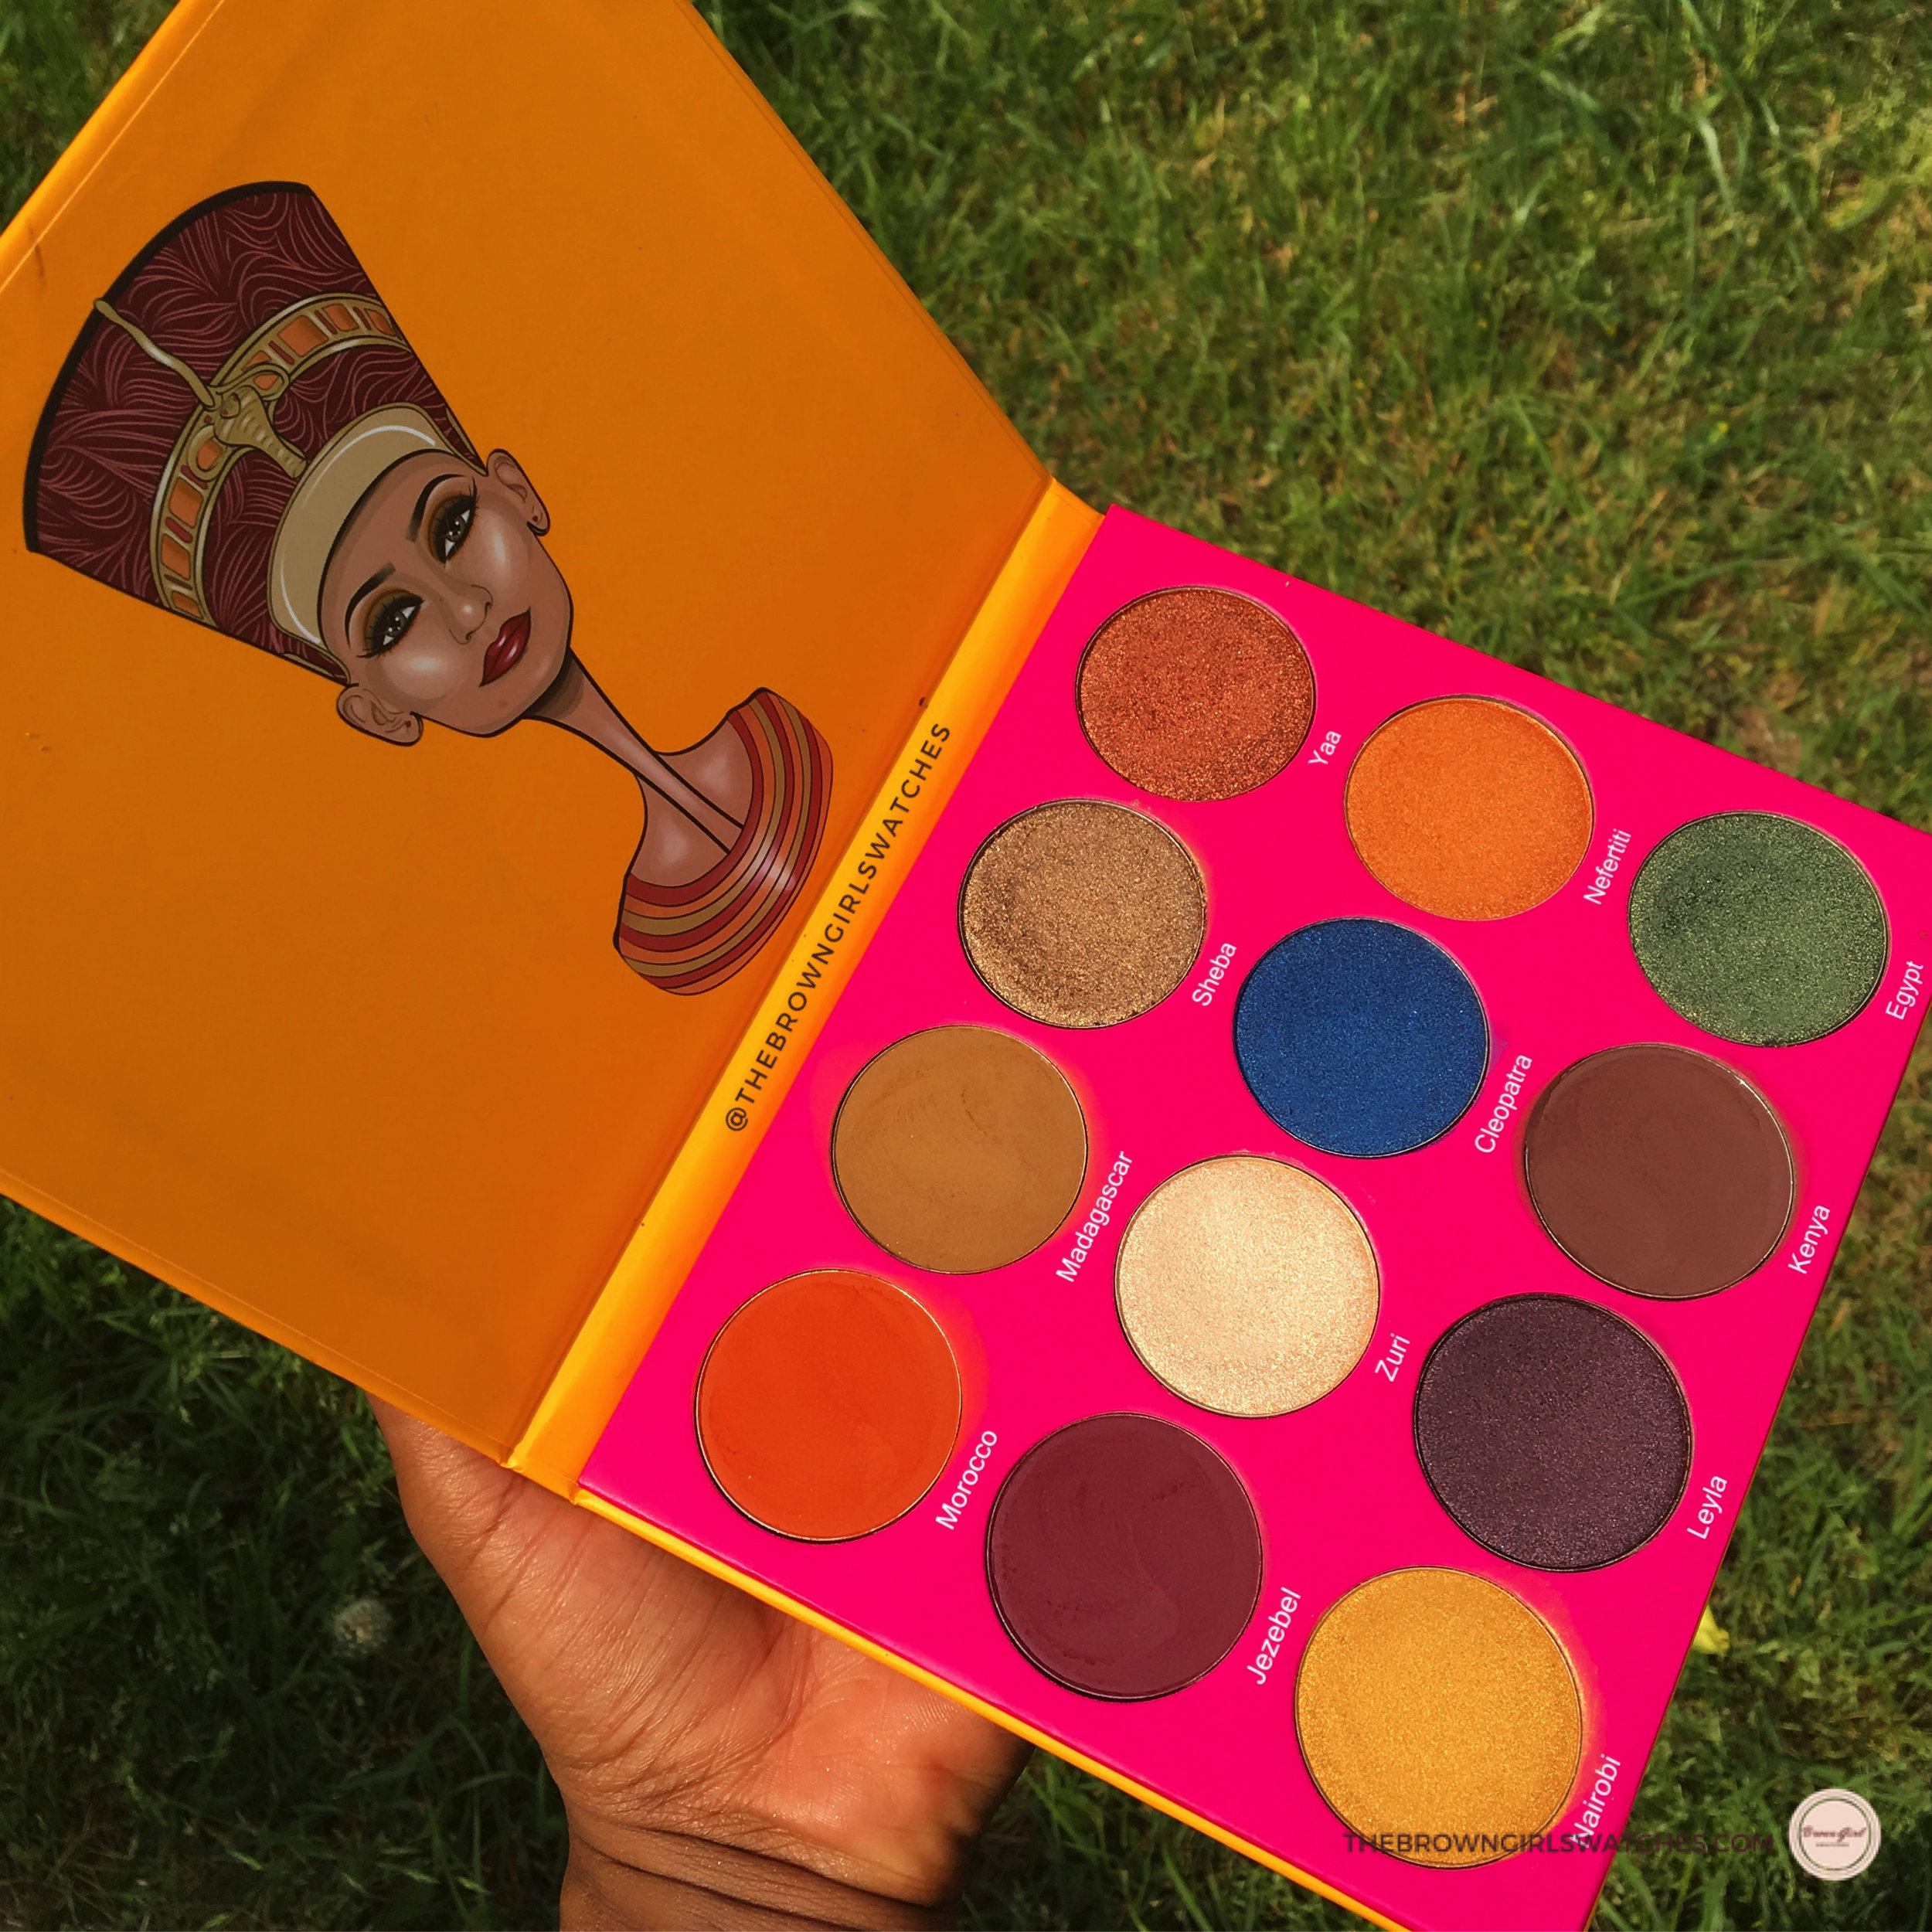 JUVIA'S PLACE NUBIAN 2 PALETTE SWATCHES AND REVIEW ON BROWN SKIN